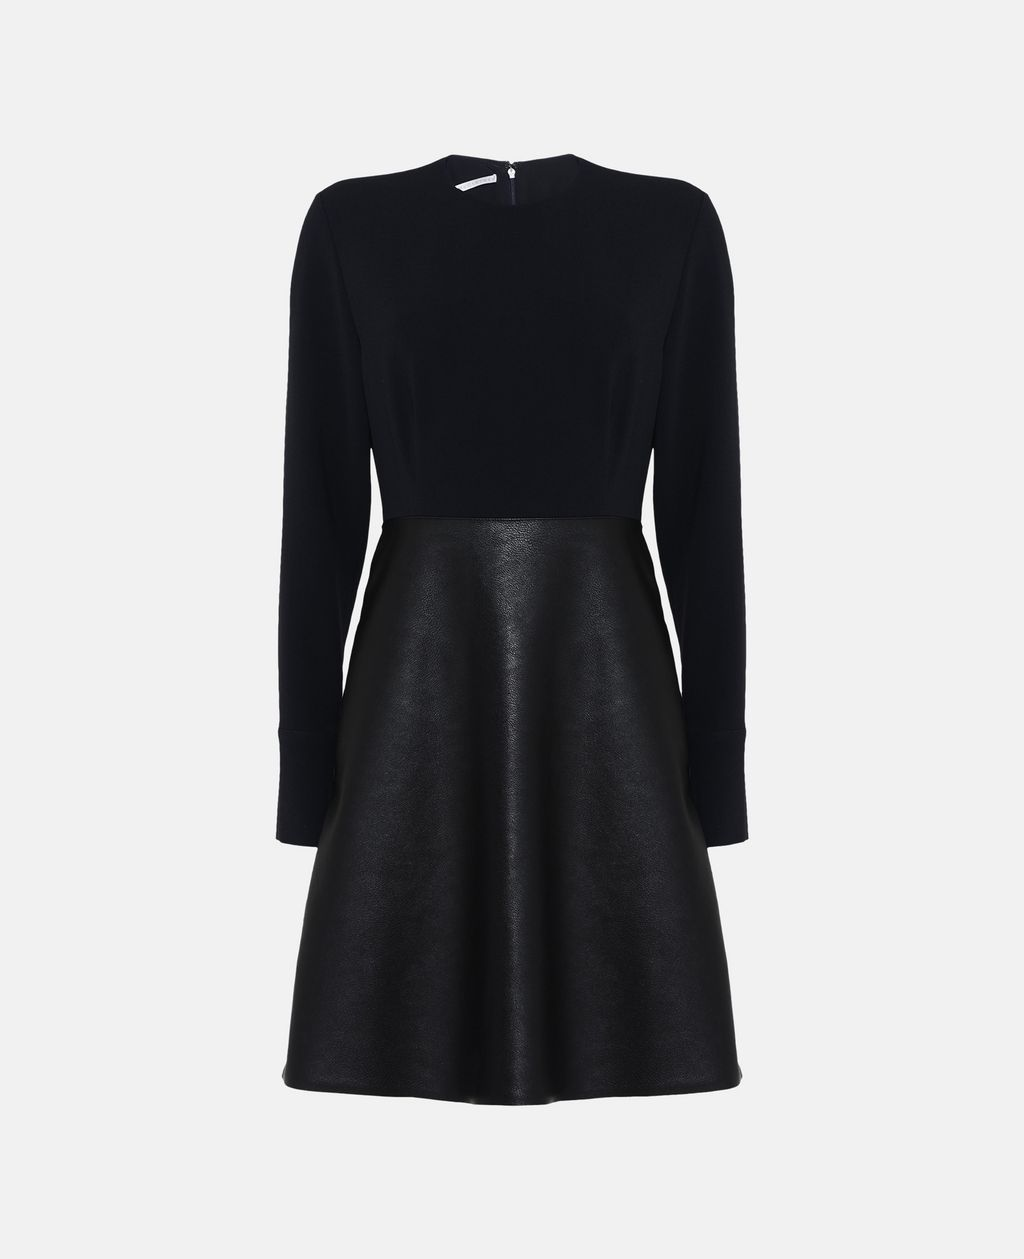 Whether she's going to work or to a party, she will look stunning in the Belina  Alter Nappa Dress from Stella McCartney, who prioritizes sustainability and  ...